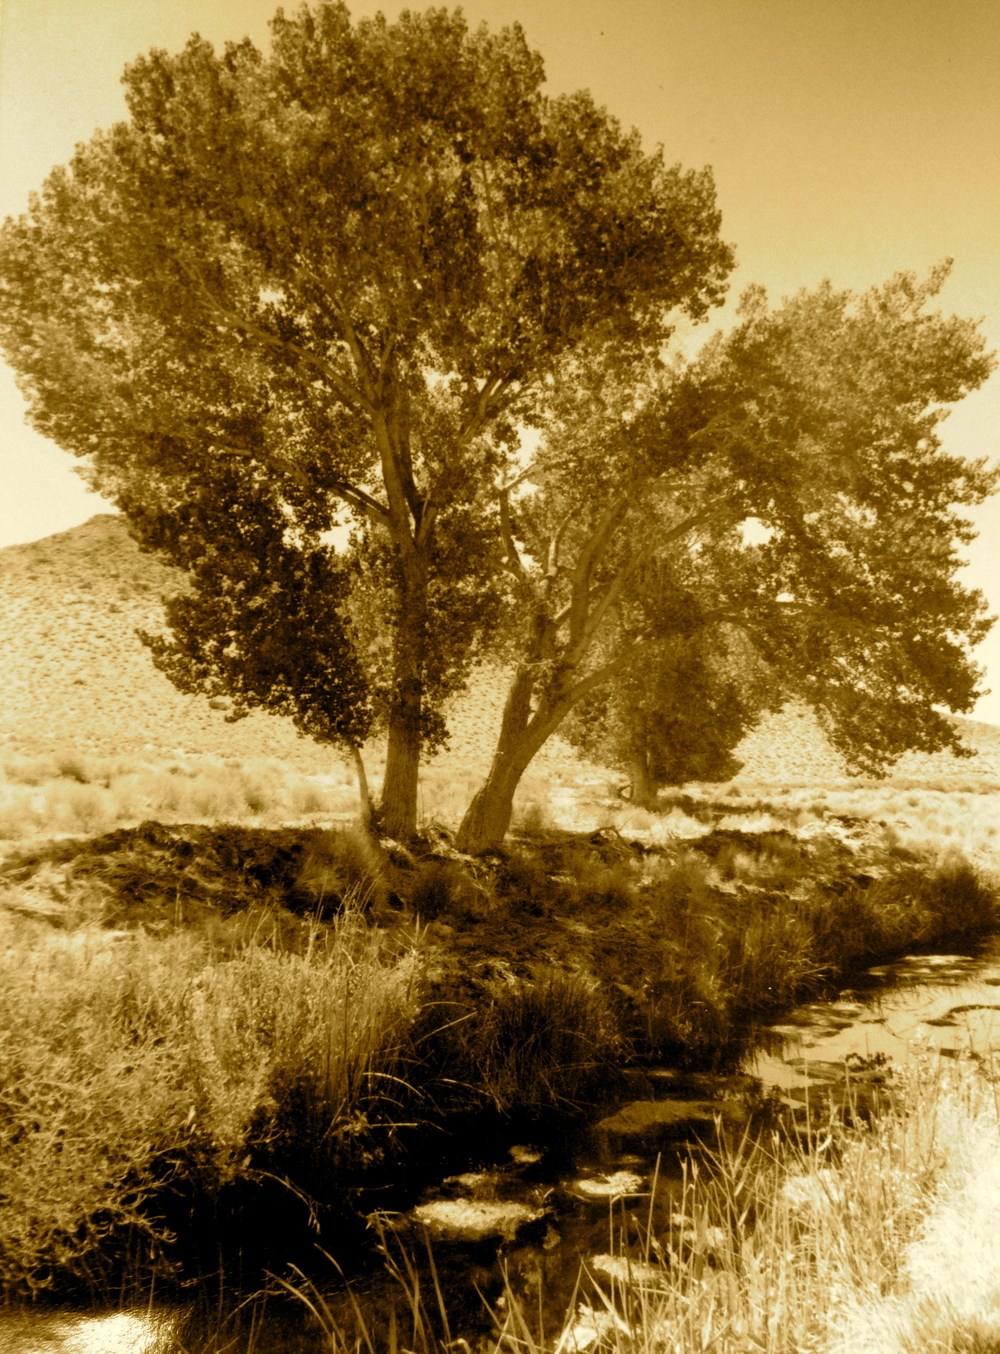 Cottonwood trees at Fish Slough, Bishop, California.